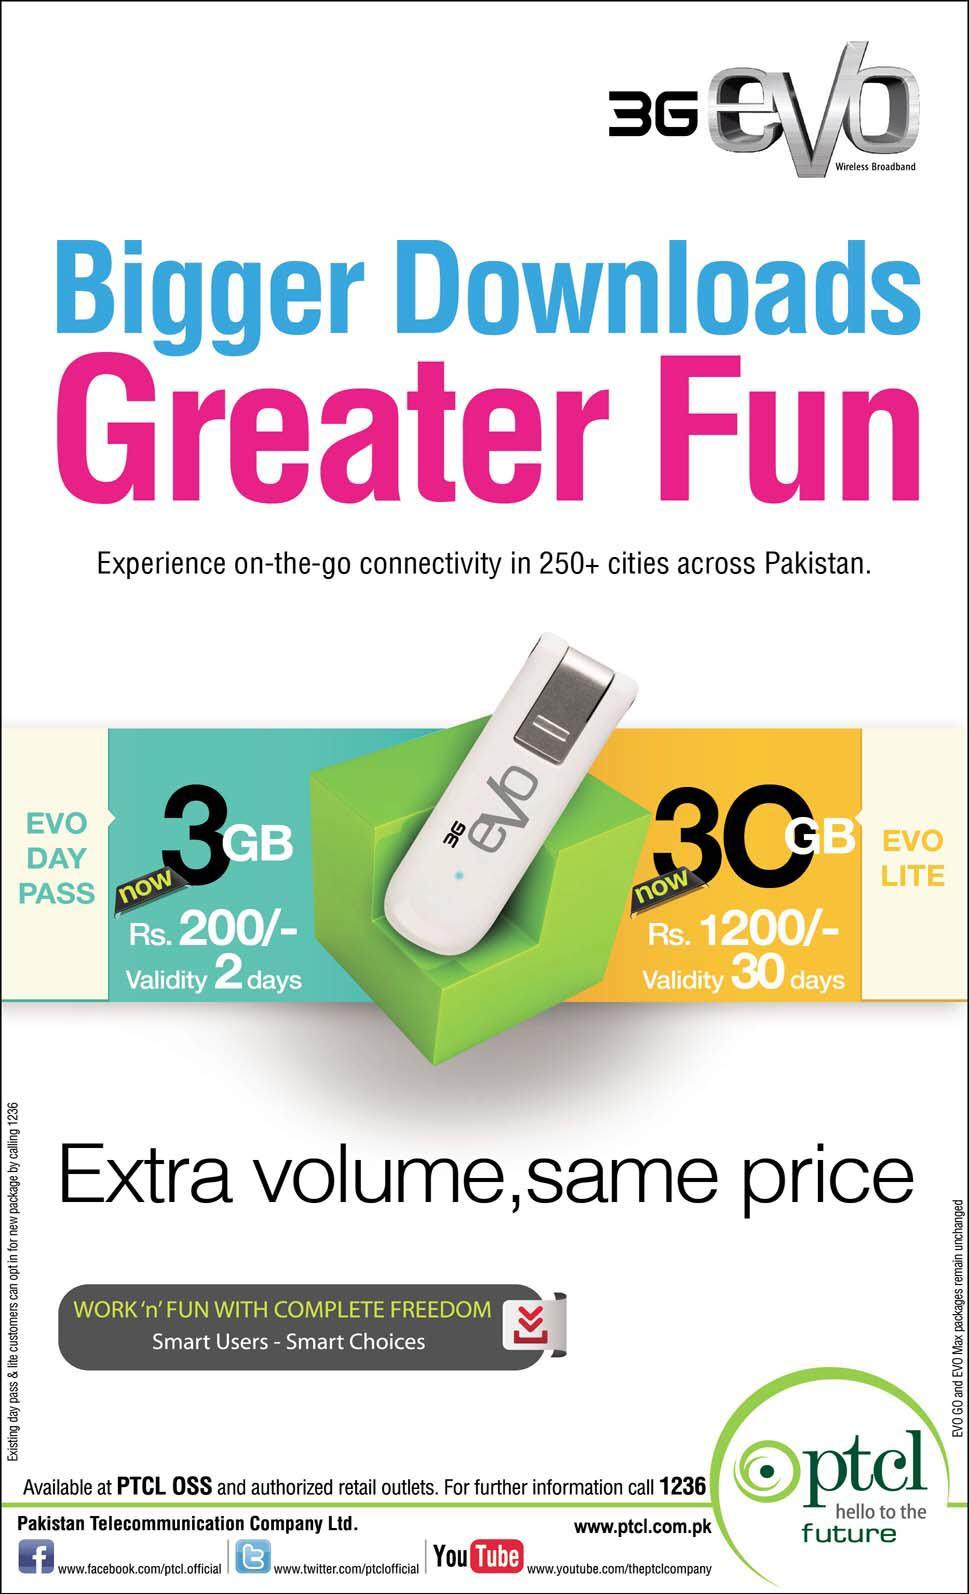 PTCL Evo 3G Offer Extra Volume with Same Price